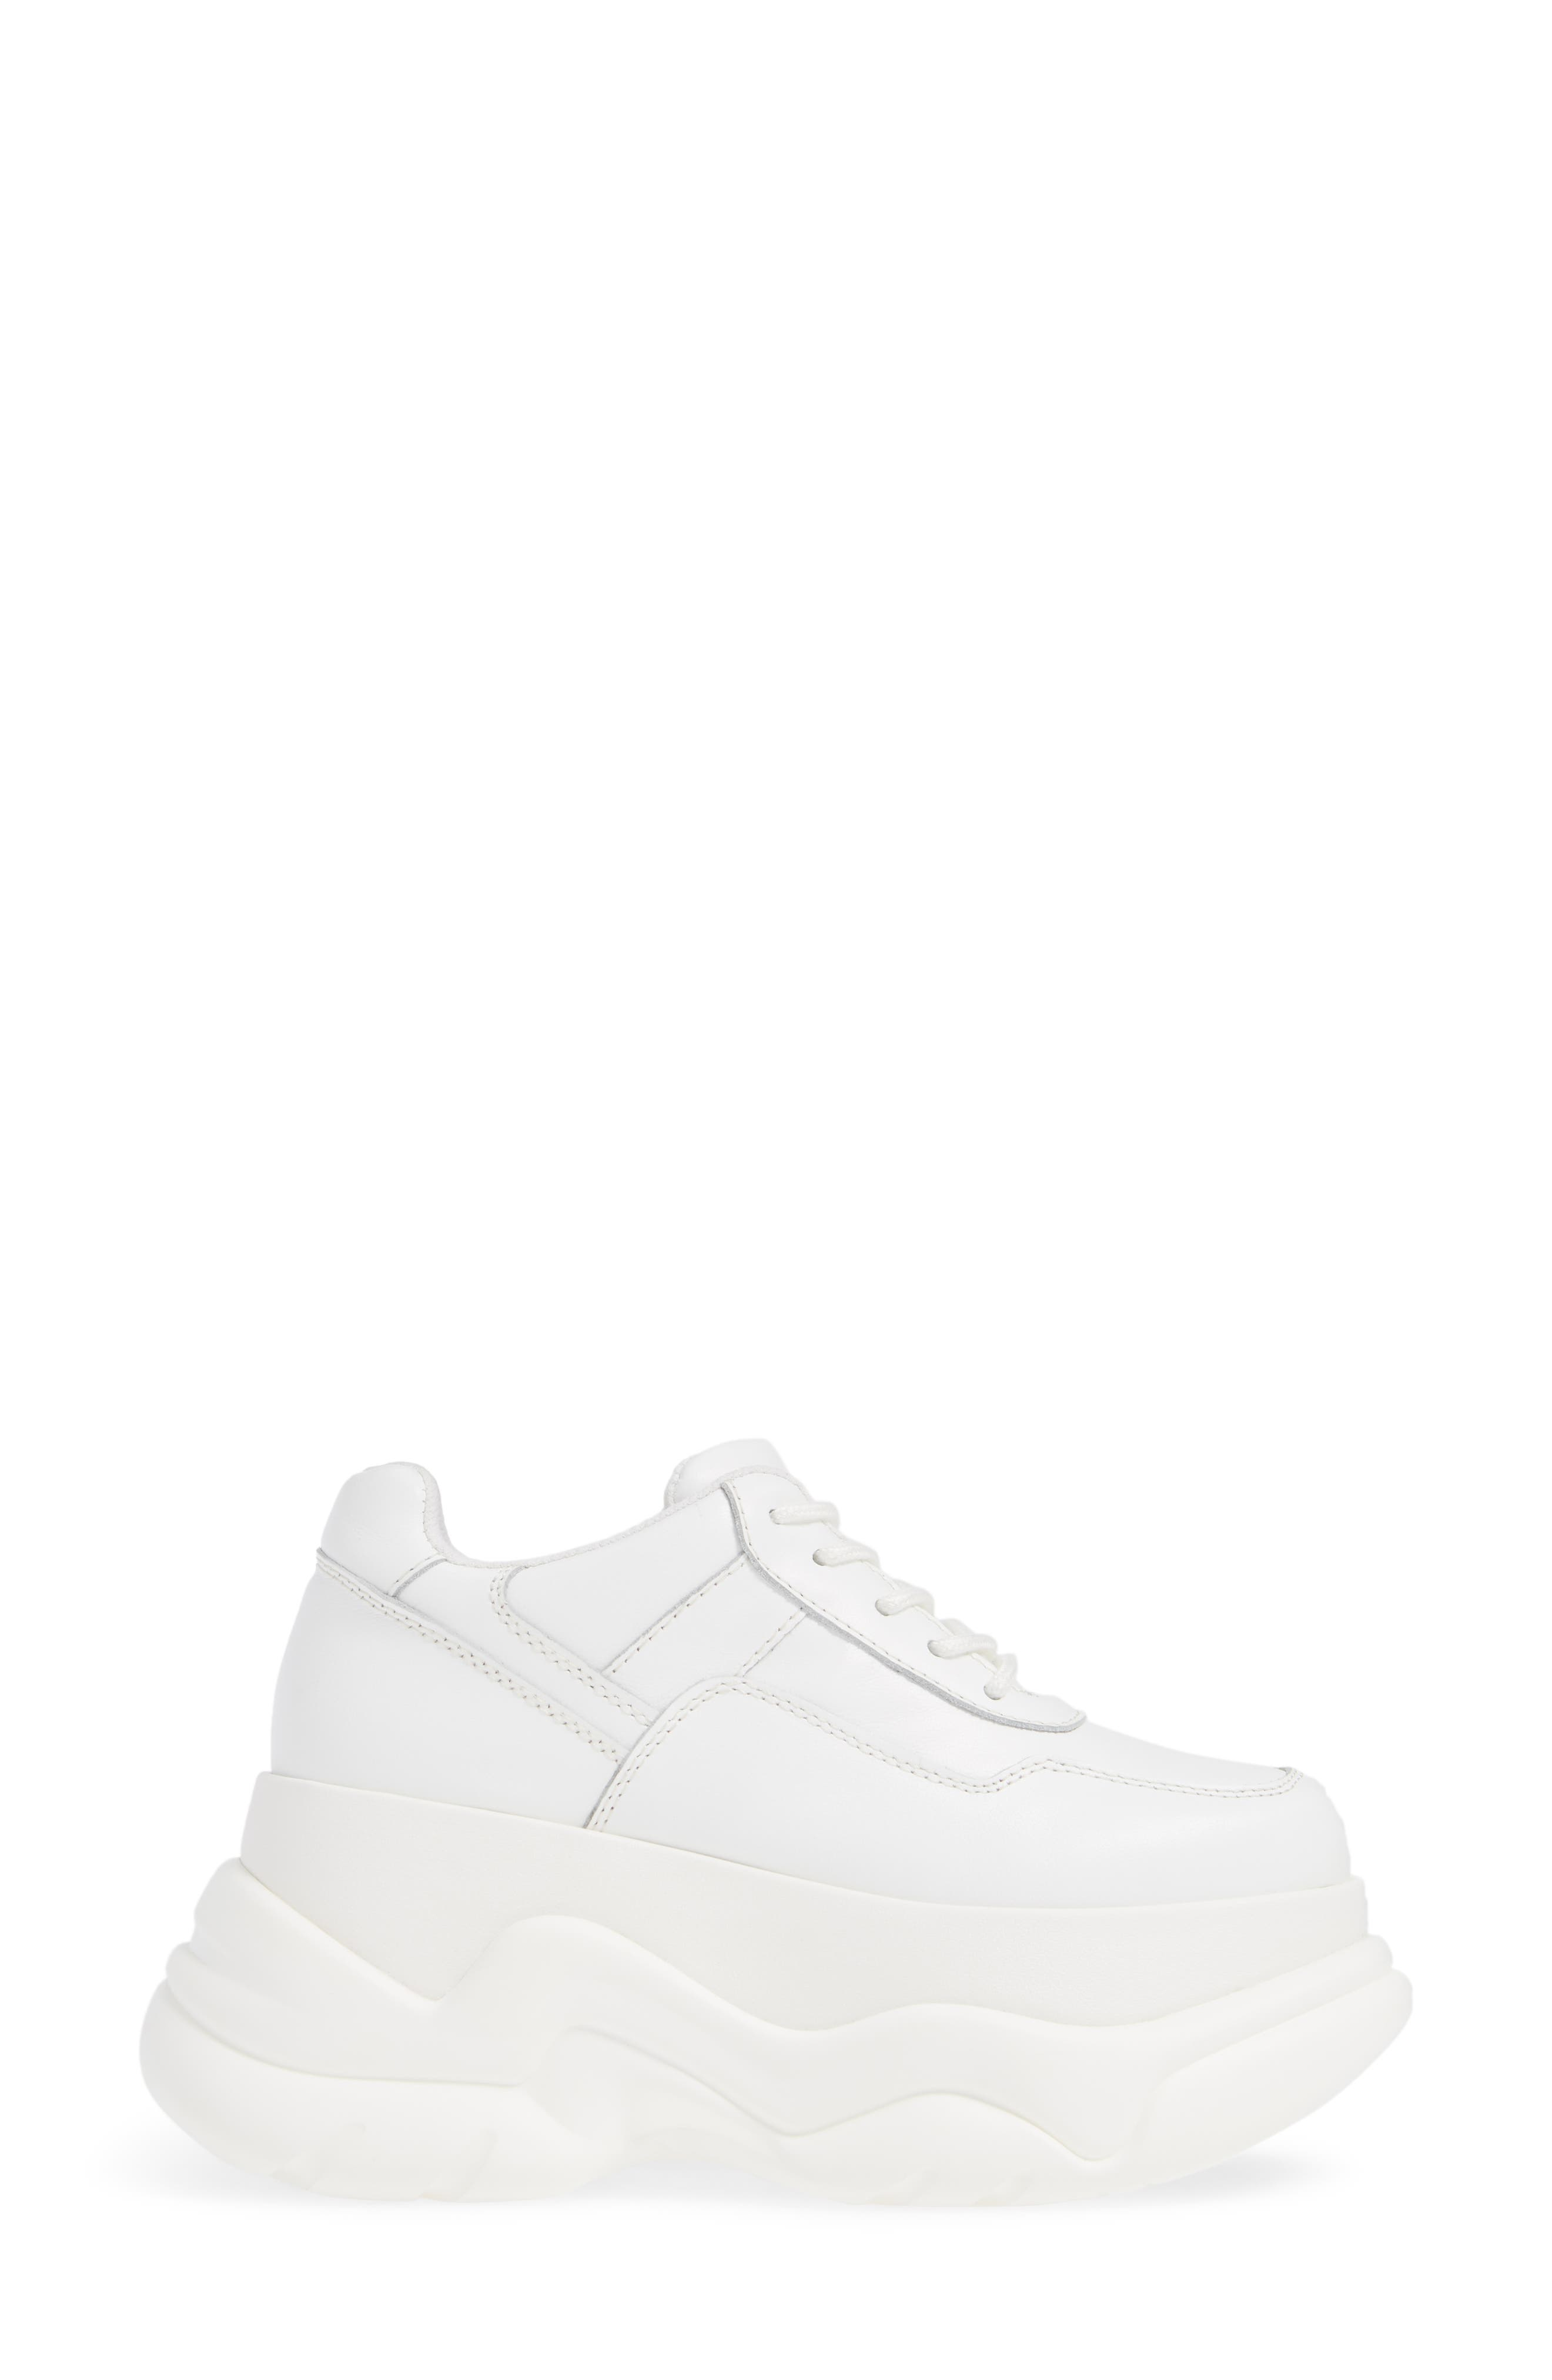 Most Def Wedge Sneaker,                             Alternate thumbnail 3, color,                             WHITE/ WHITE LEATHER